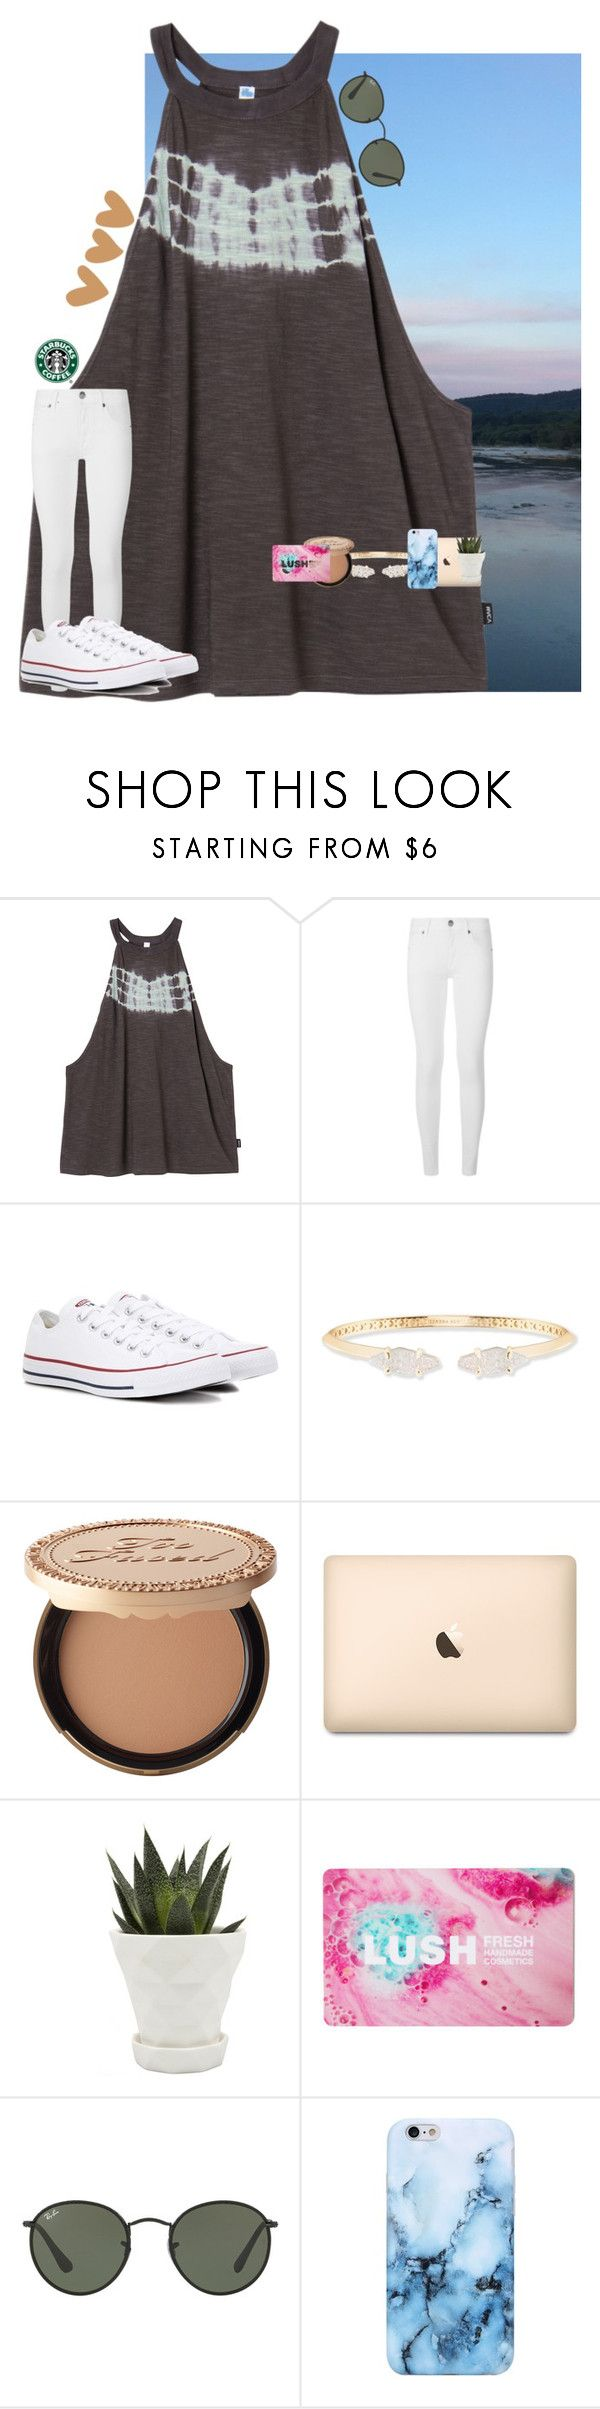 """•today is the day!!•"" by mackenzielacy814 on Polyvore featuring RVCA, Burberry, Converse, Kendra Scott, Too Faced Cosmetics, Chive, Ray-Ban and mrlloves"